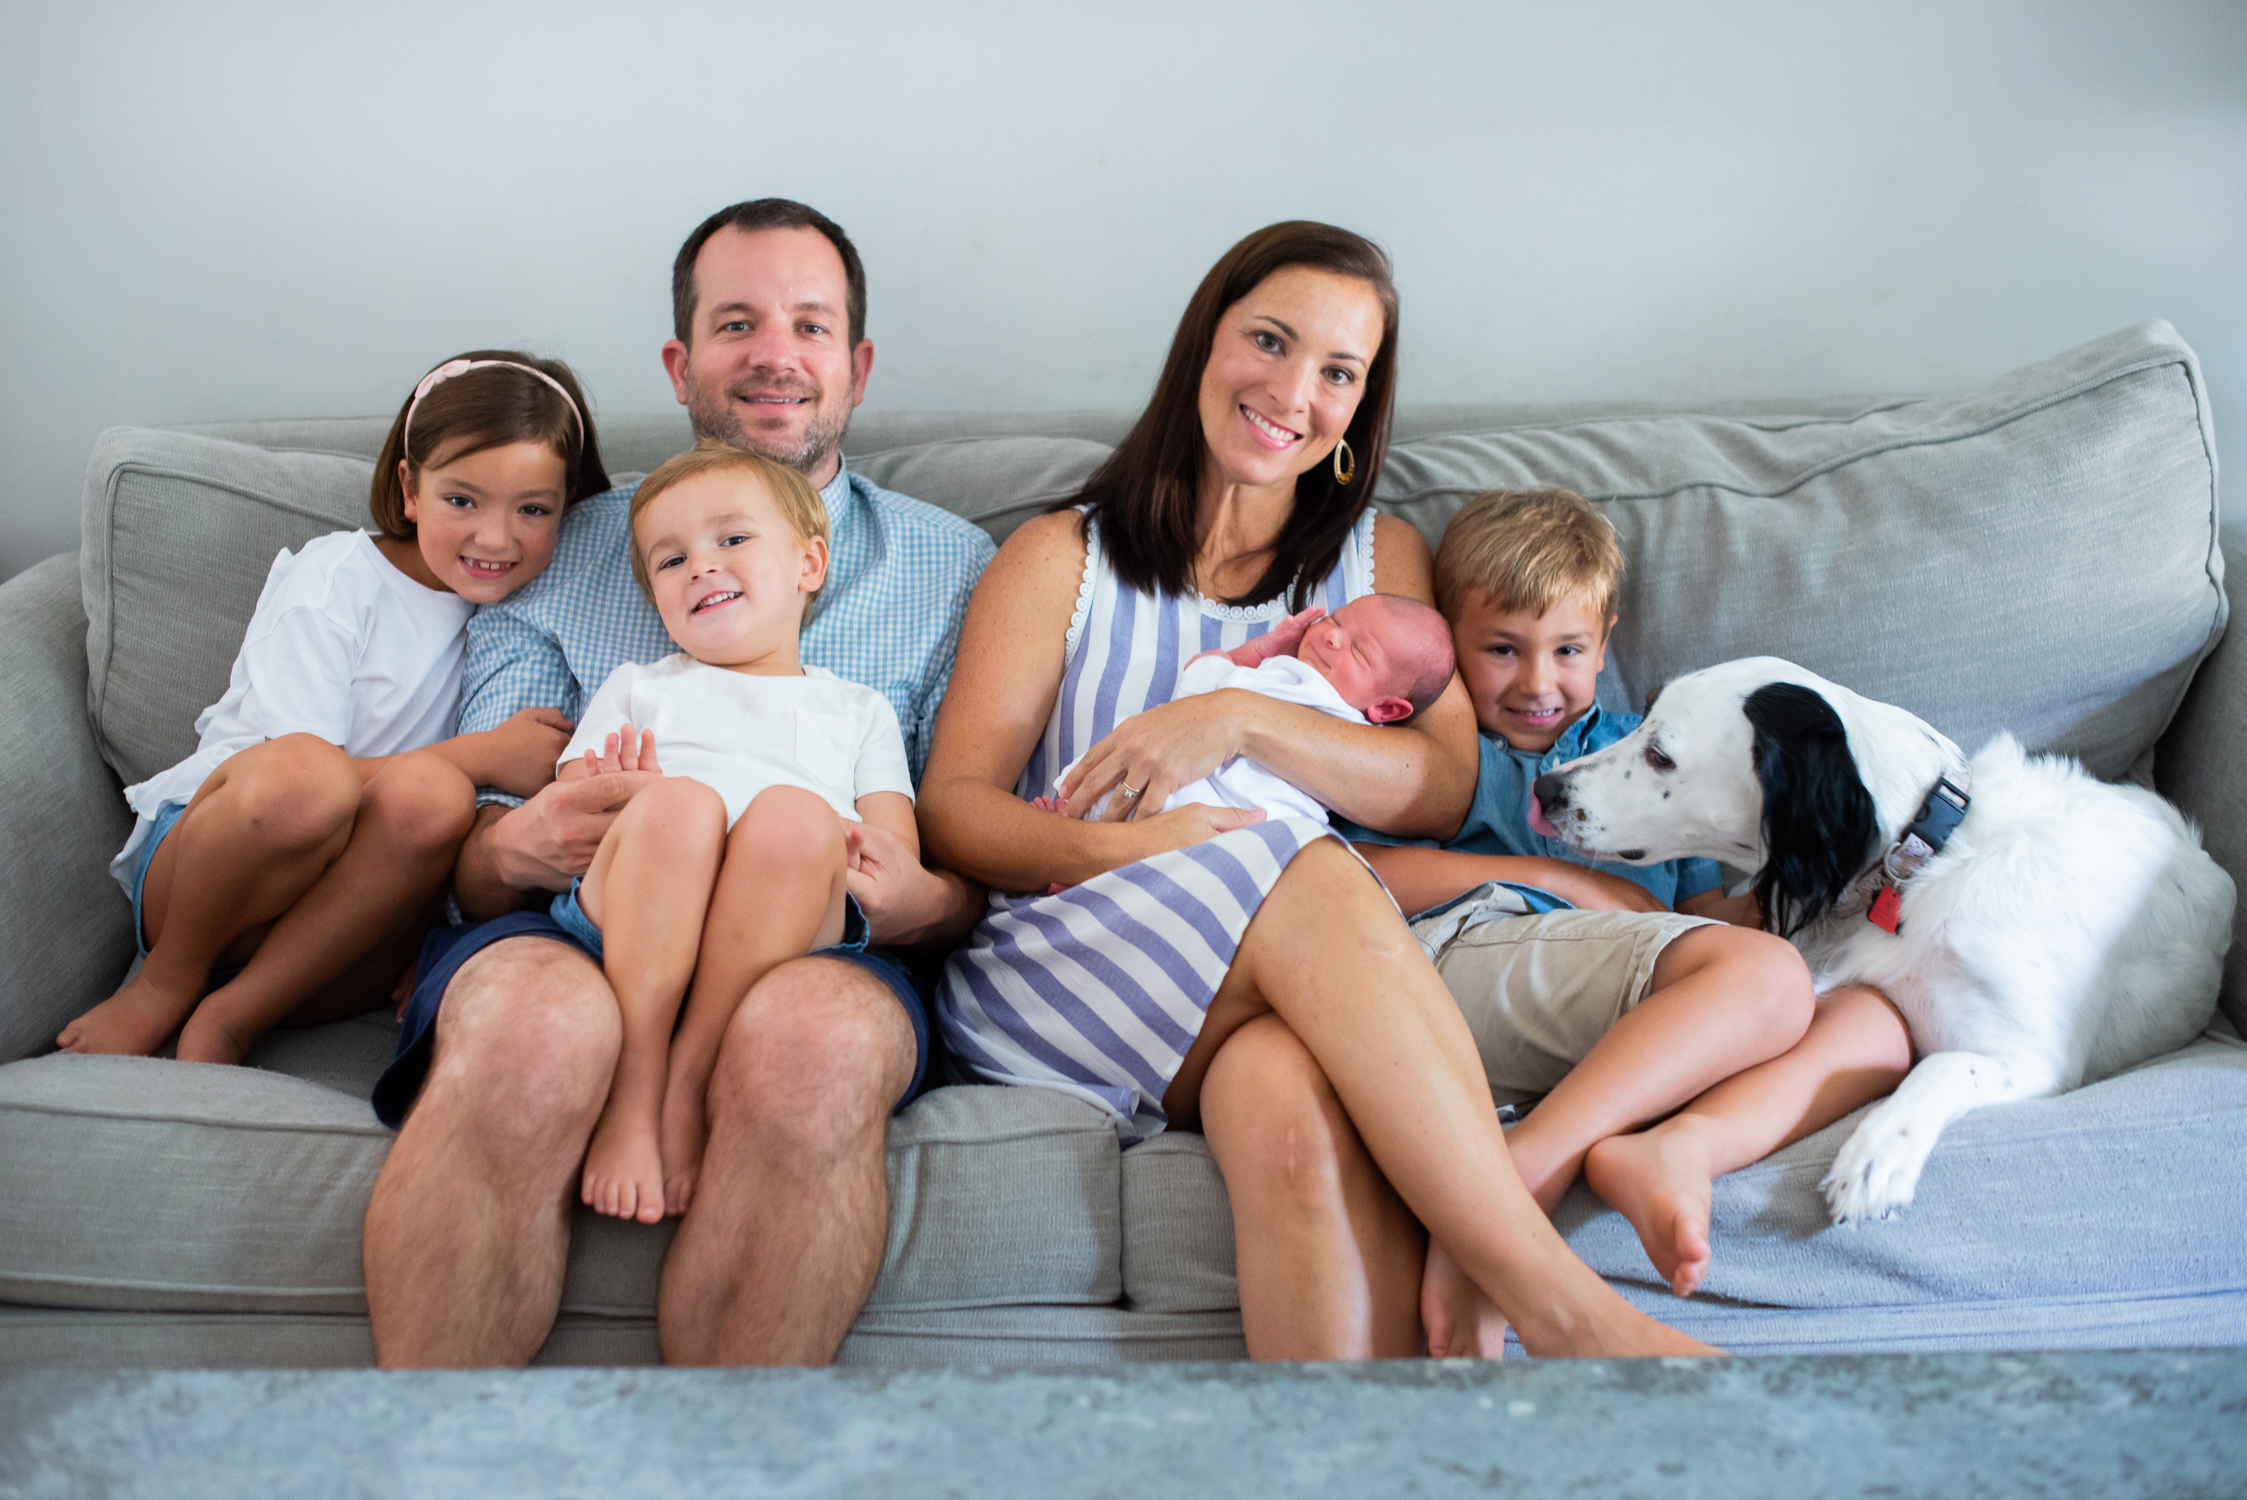 Charleston Family Portrait by Reese Moore Photography